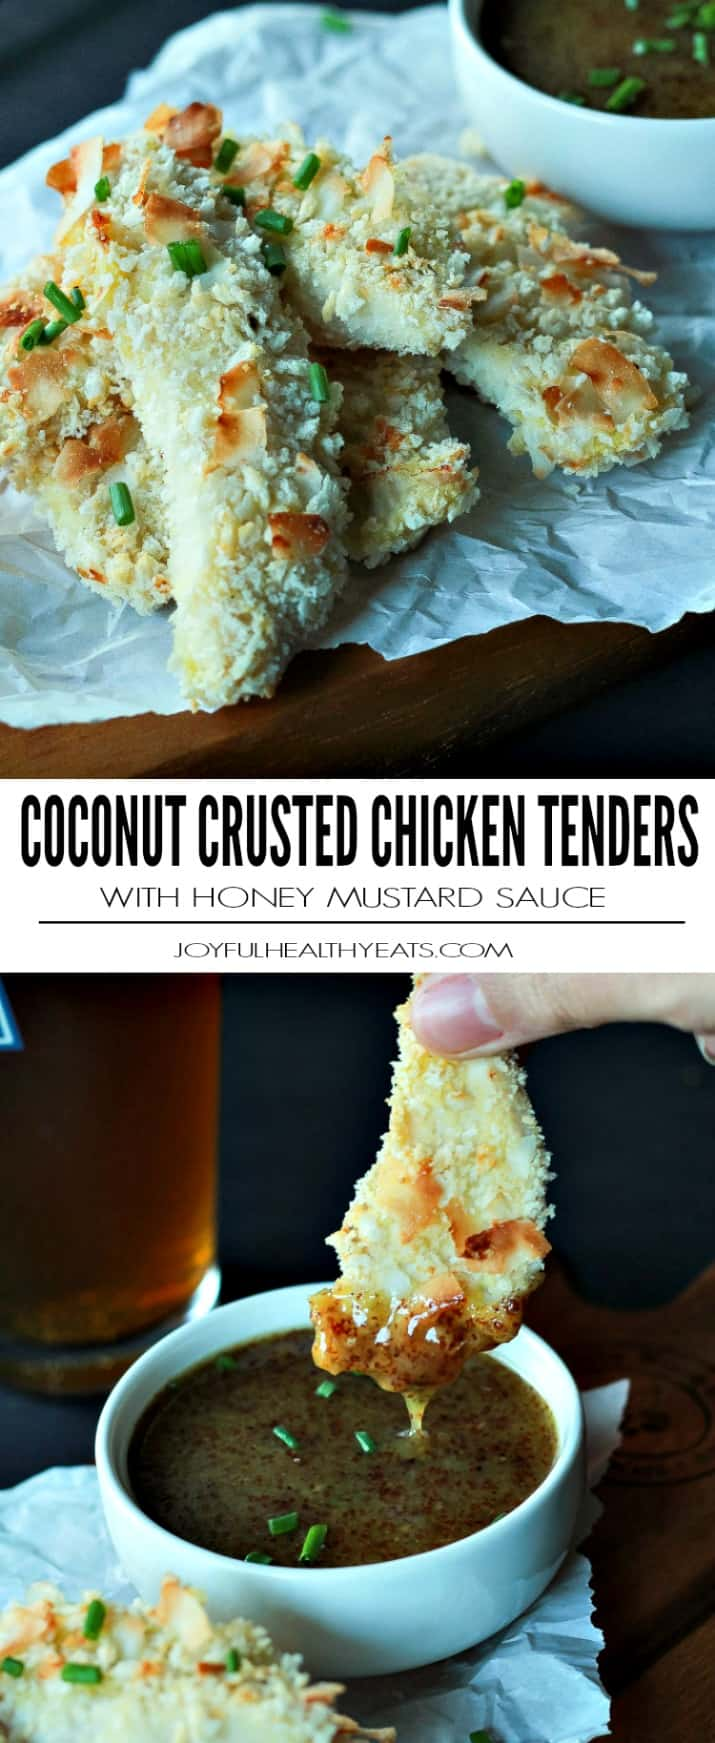 Dinner in 30 minutes! Baked Coconut Crusted Chicken Tenders using just 3 ingredients and served with a Tangy Honey Mustard Sauce for dunking. You will love this! | joyfulhealthyeats.com #recipe